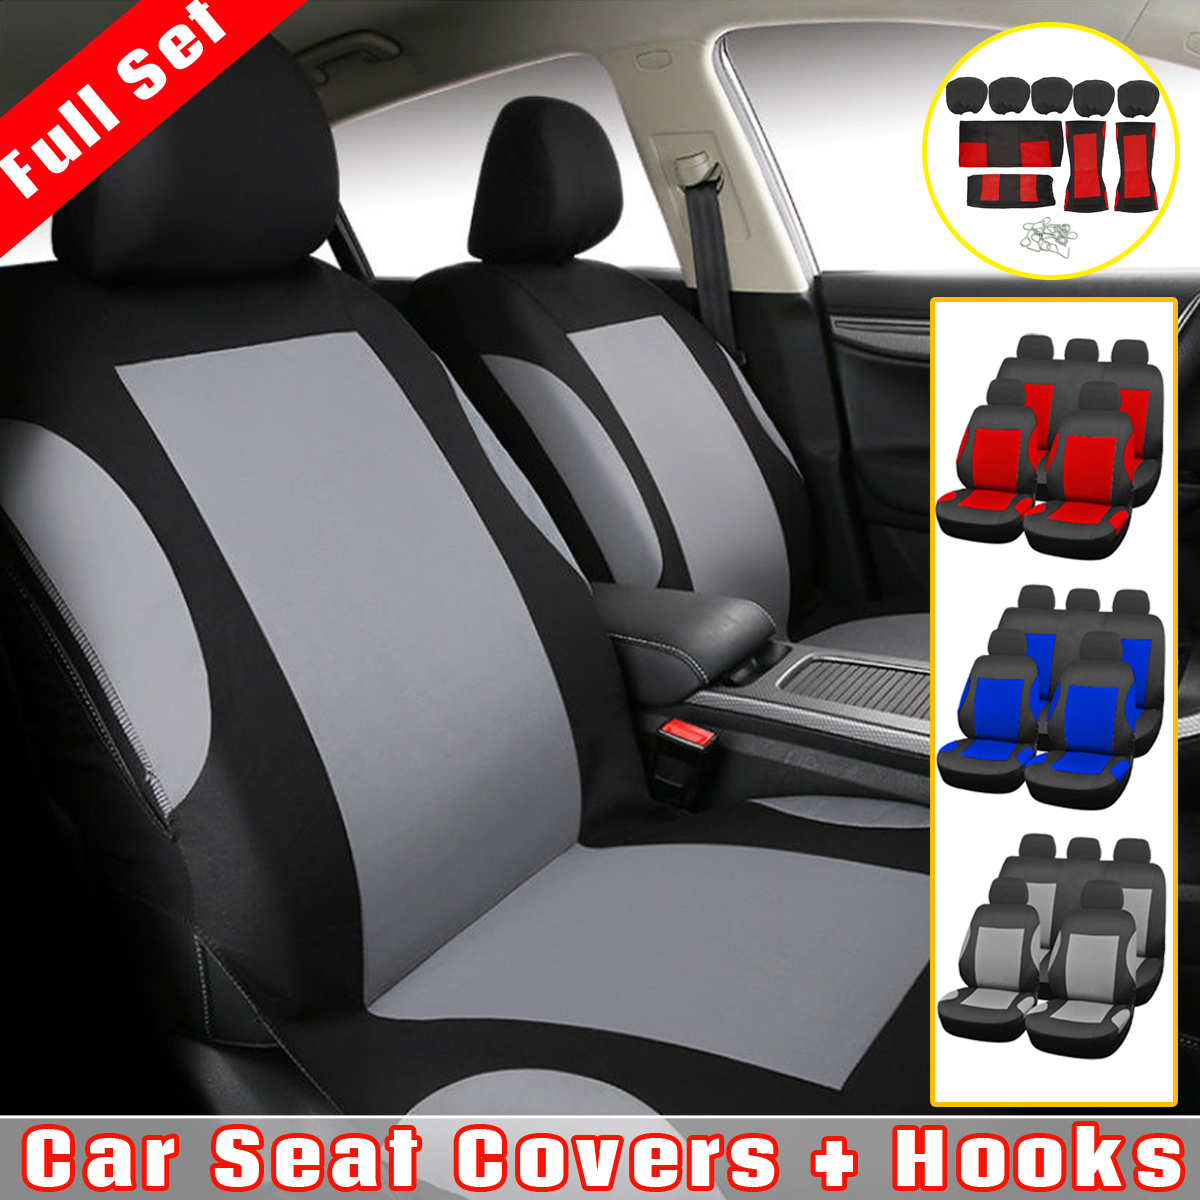 9Pcs/set Universal Car Seat Cover + Hooks Full Set For Auto Front + Rear Seat Headrests